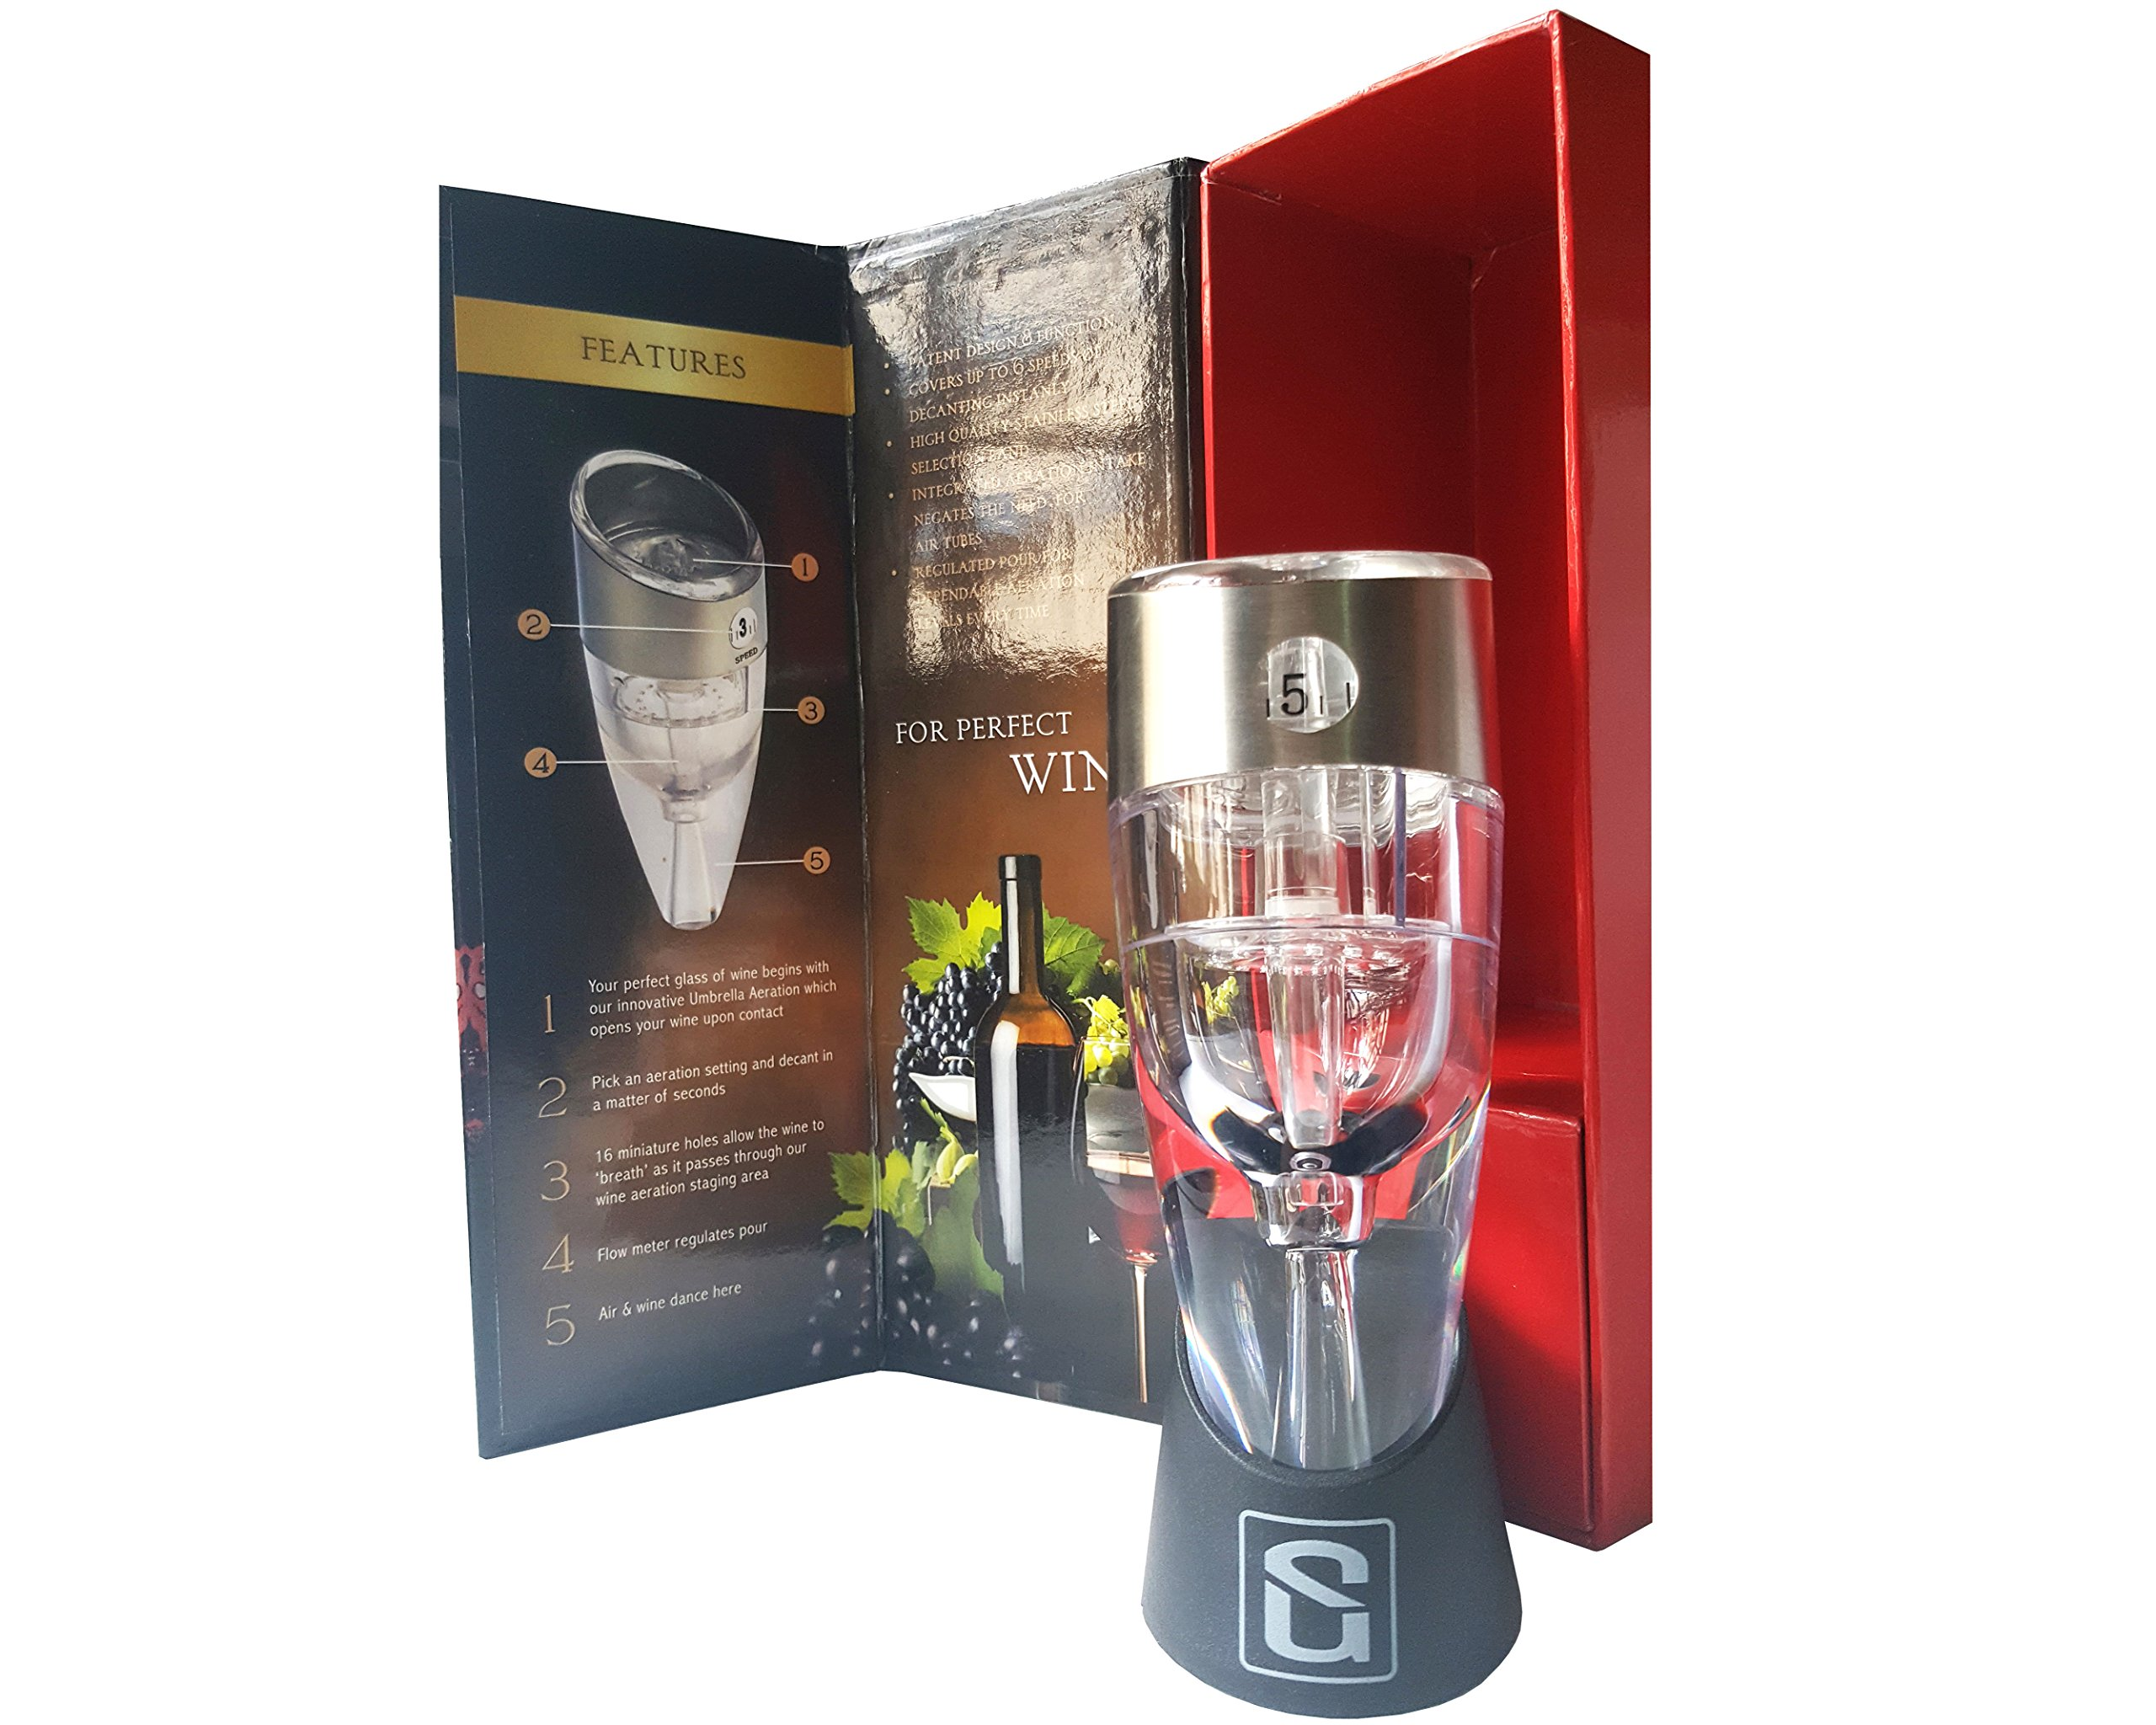 JPML Adjustable Wine Aerator Decanter Pourer - FDA & LFGB Approved, Premium Gift for Party, Bar, Home and Event.